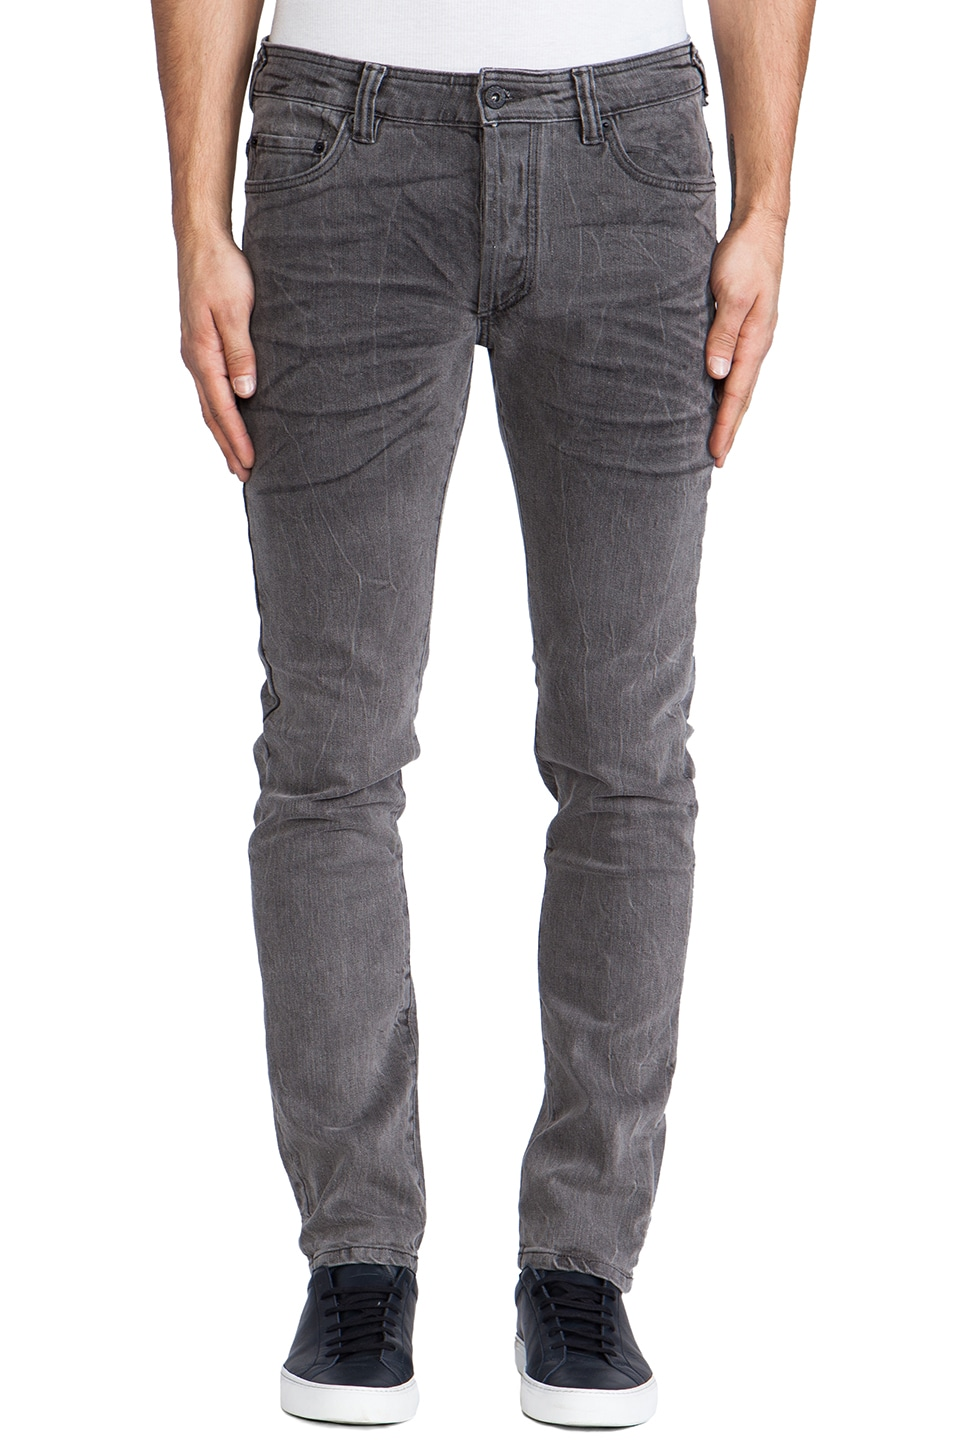 Natural Selection Denim Taper in Grey